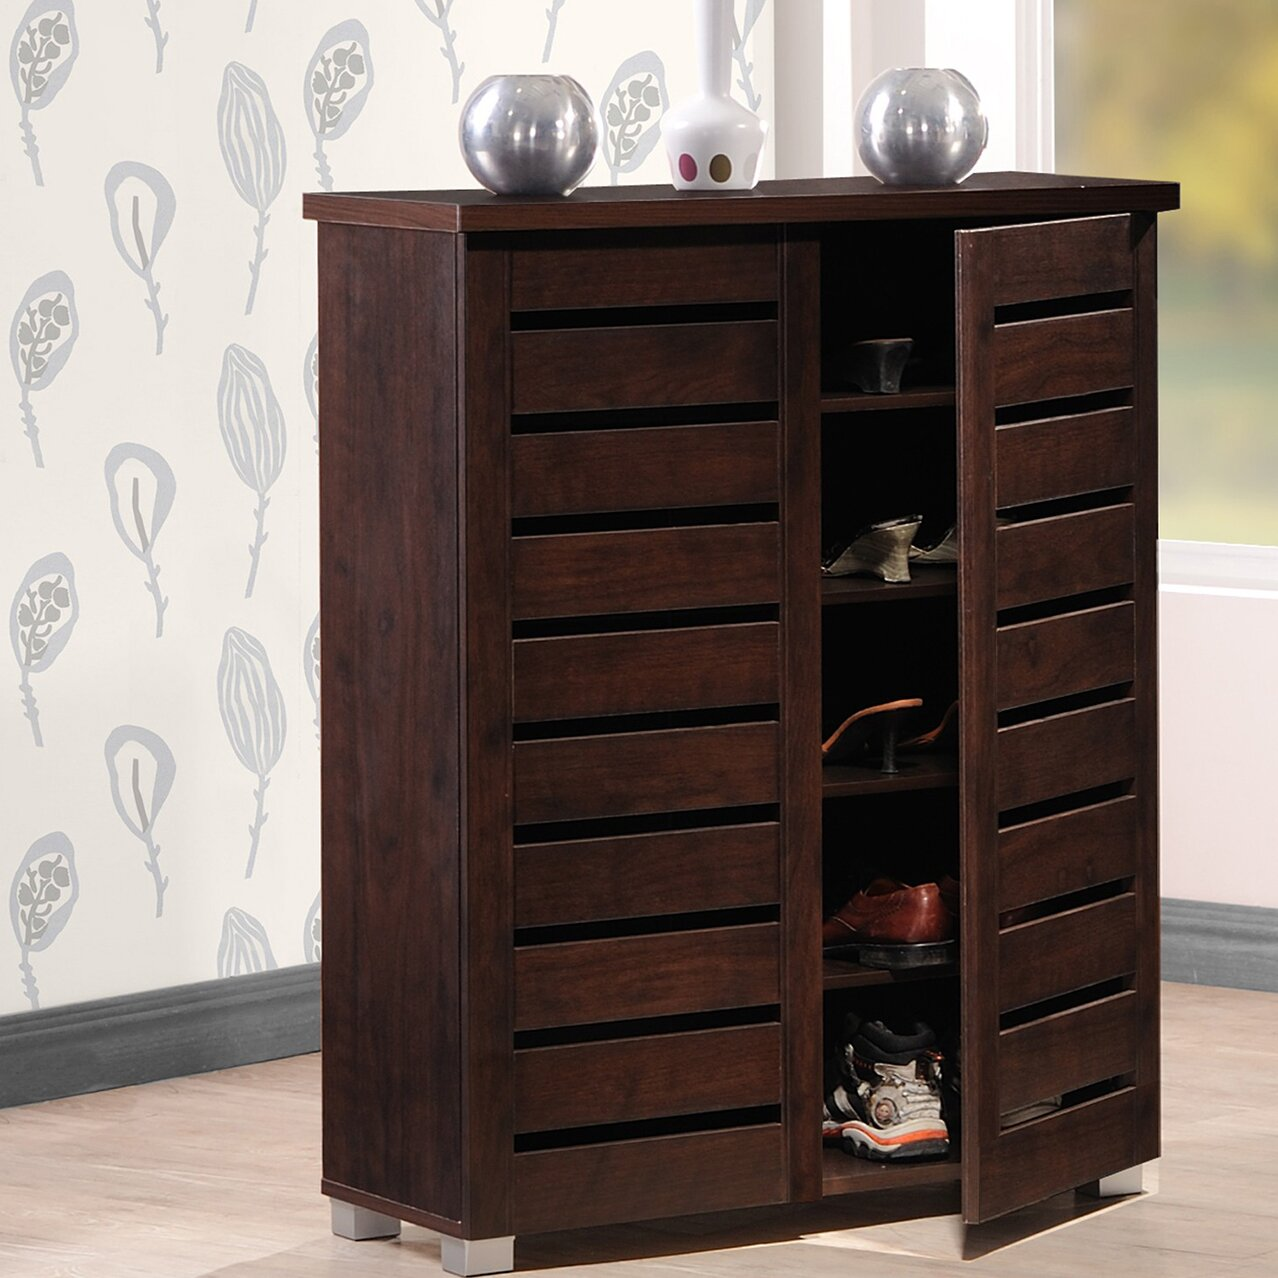 Wholesale interiors baxton studio adalwin 15 pair shoe Entryway storage cabinet